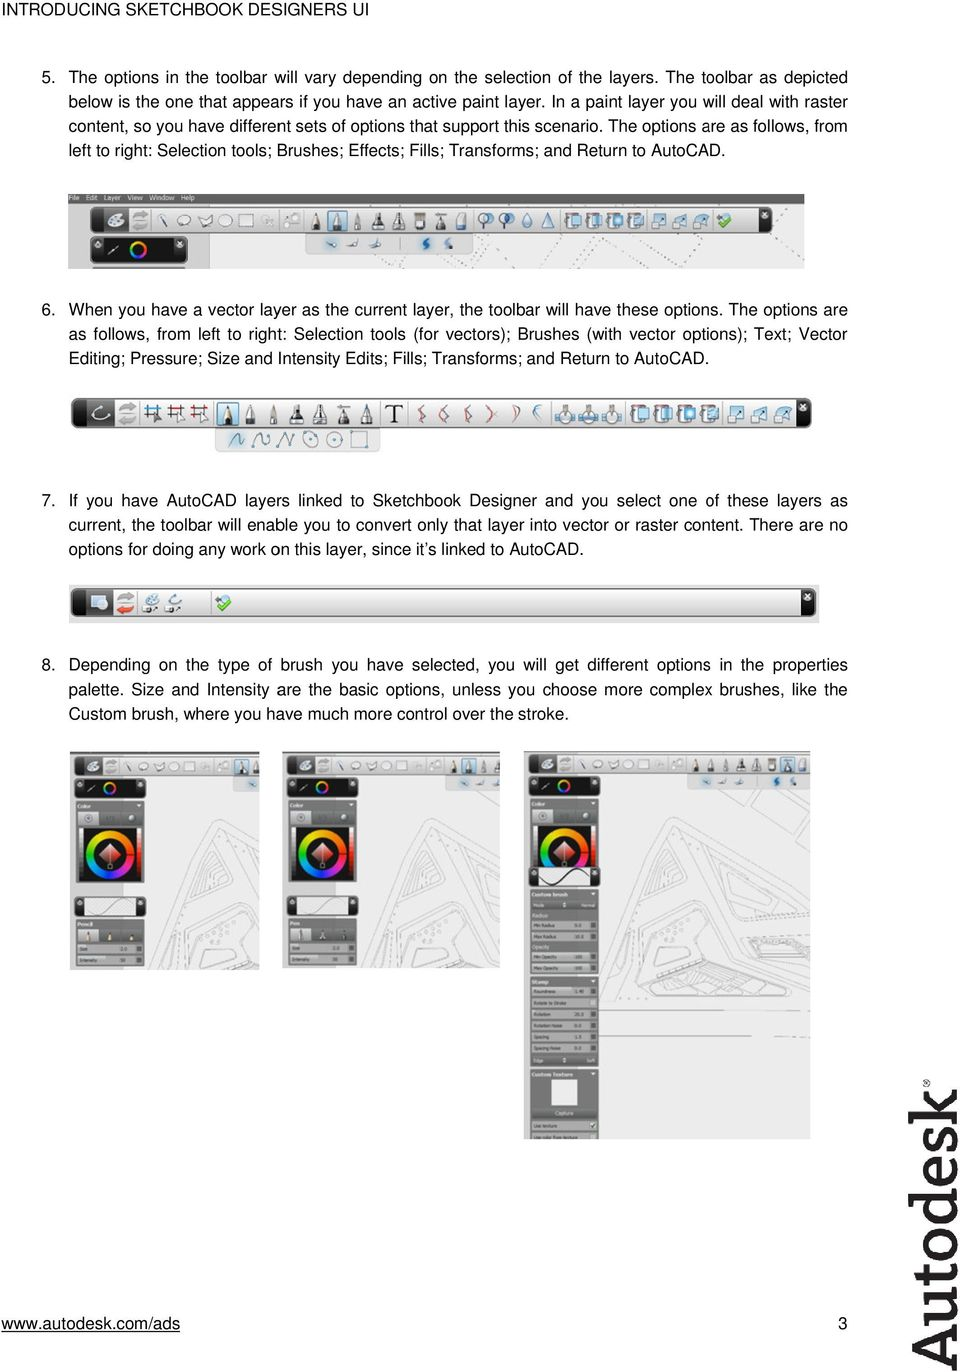 The options are as follows, from left to right: Selection tools; Brushes; Effects; Fills; Transforms; and Return to AutoCAD. 6.